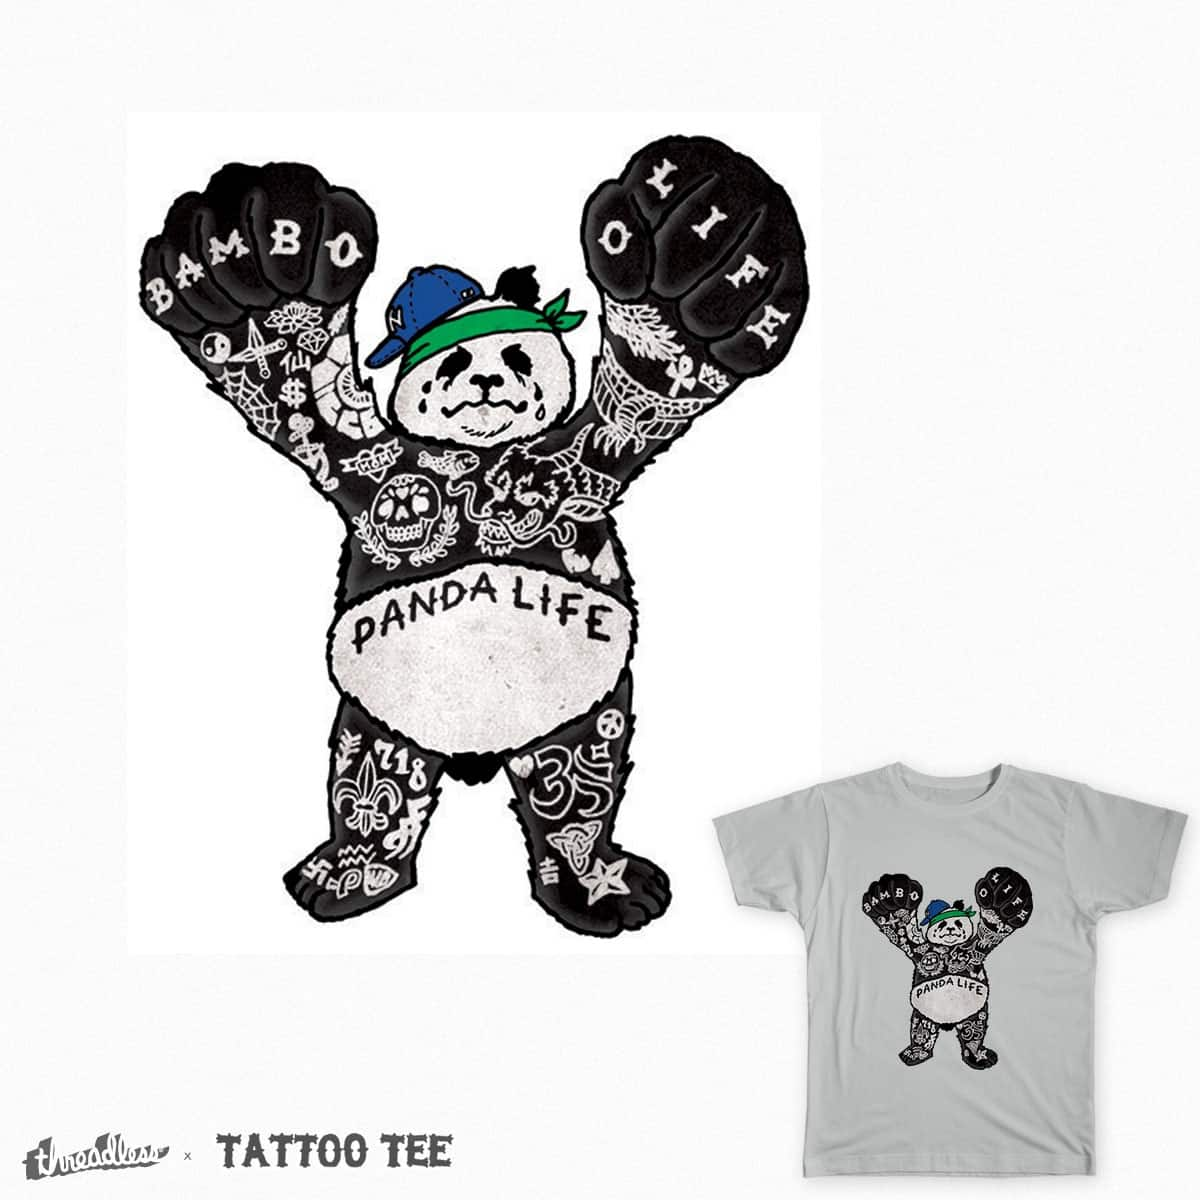 Panda Life by lumpeter on Threadless